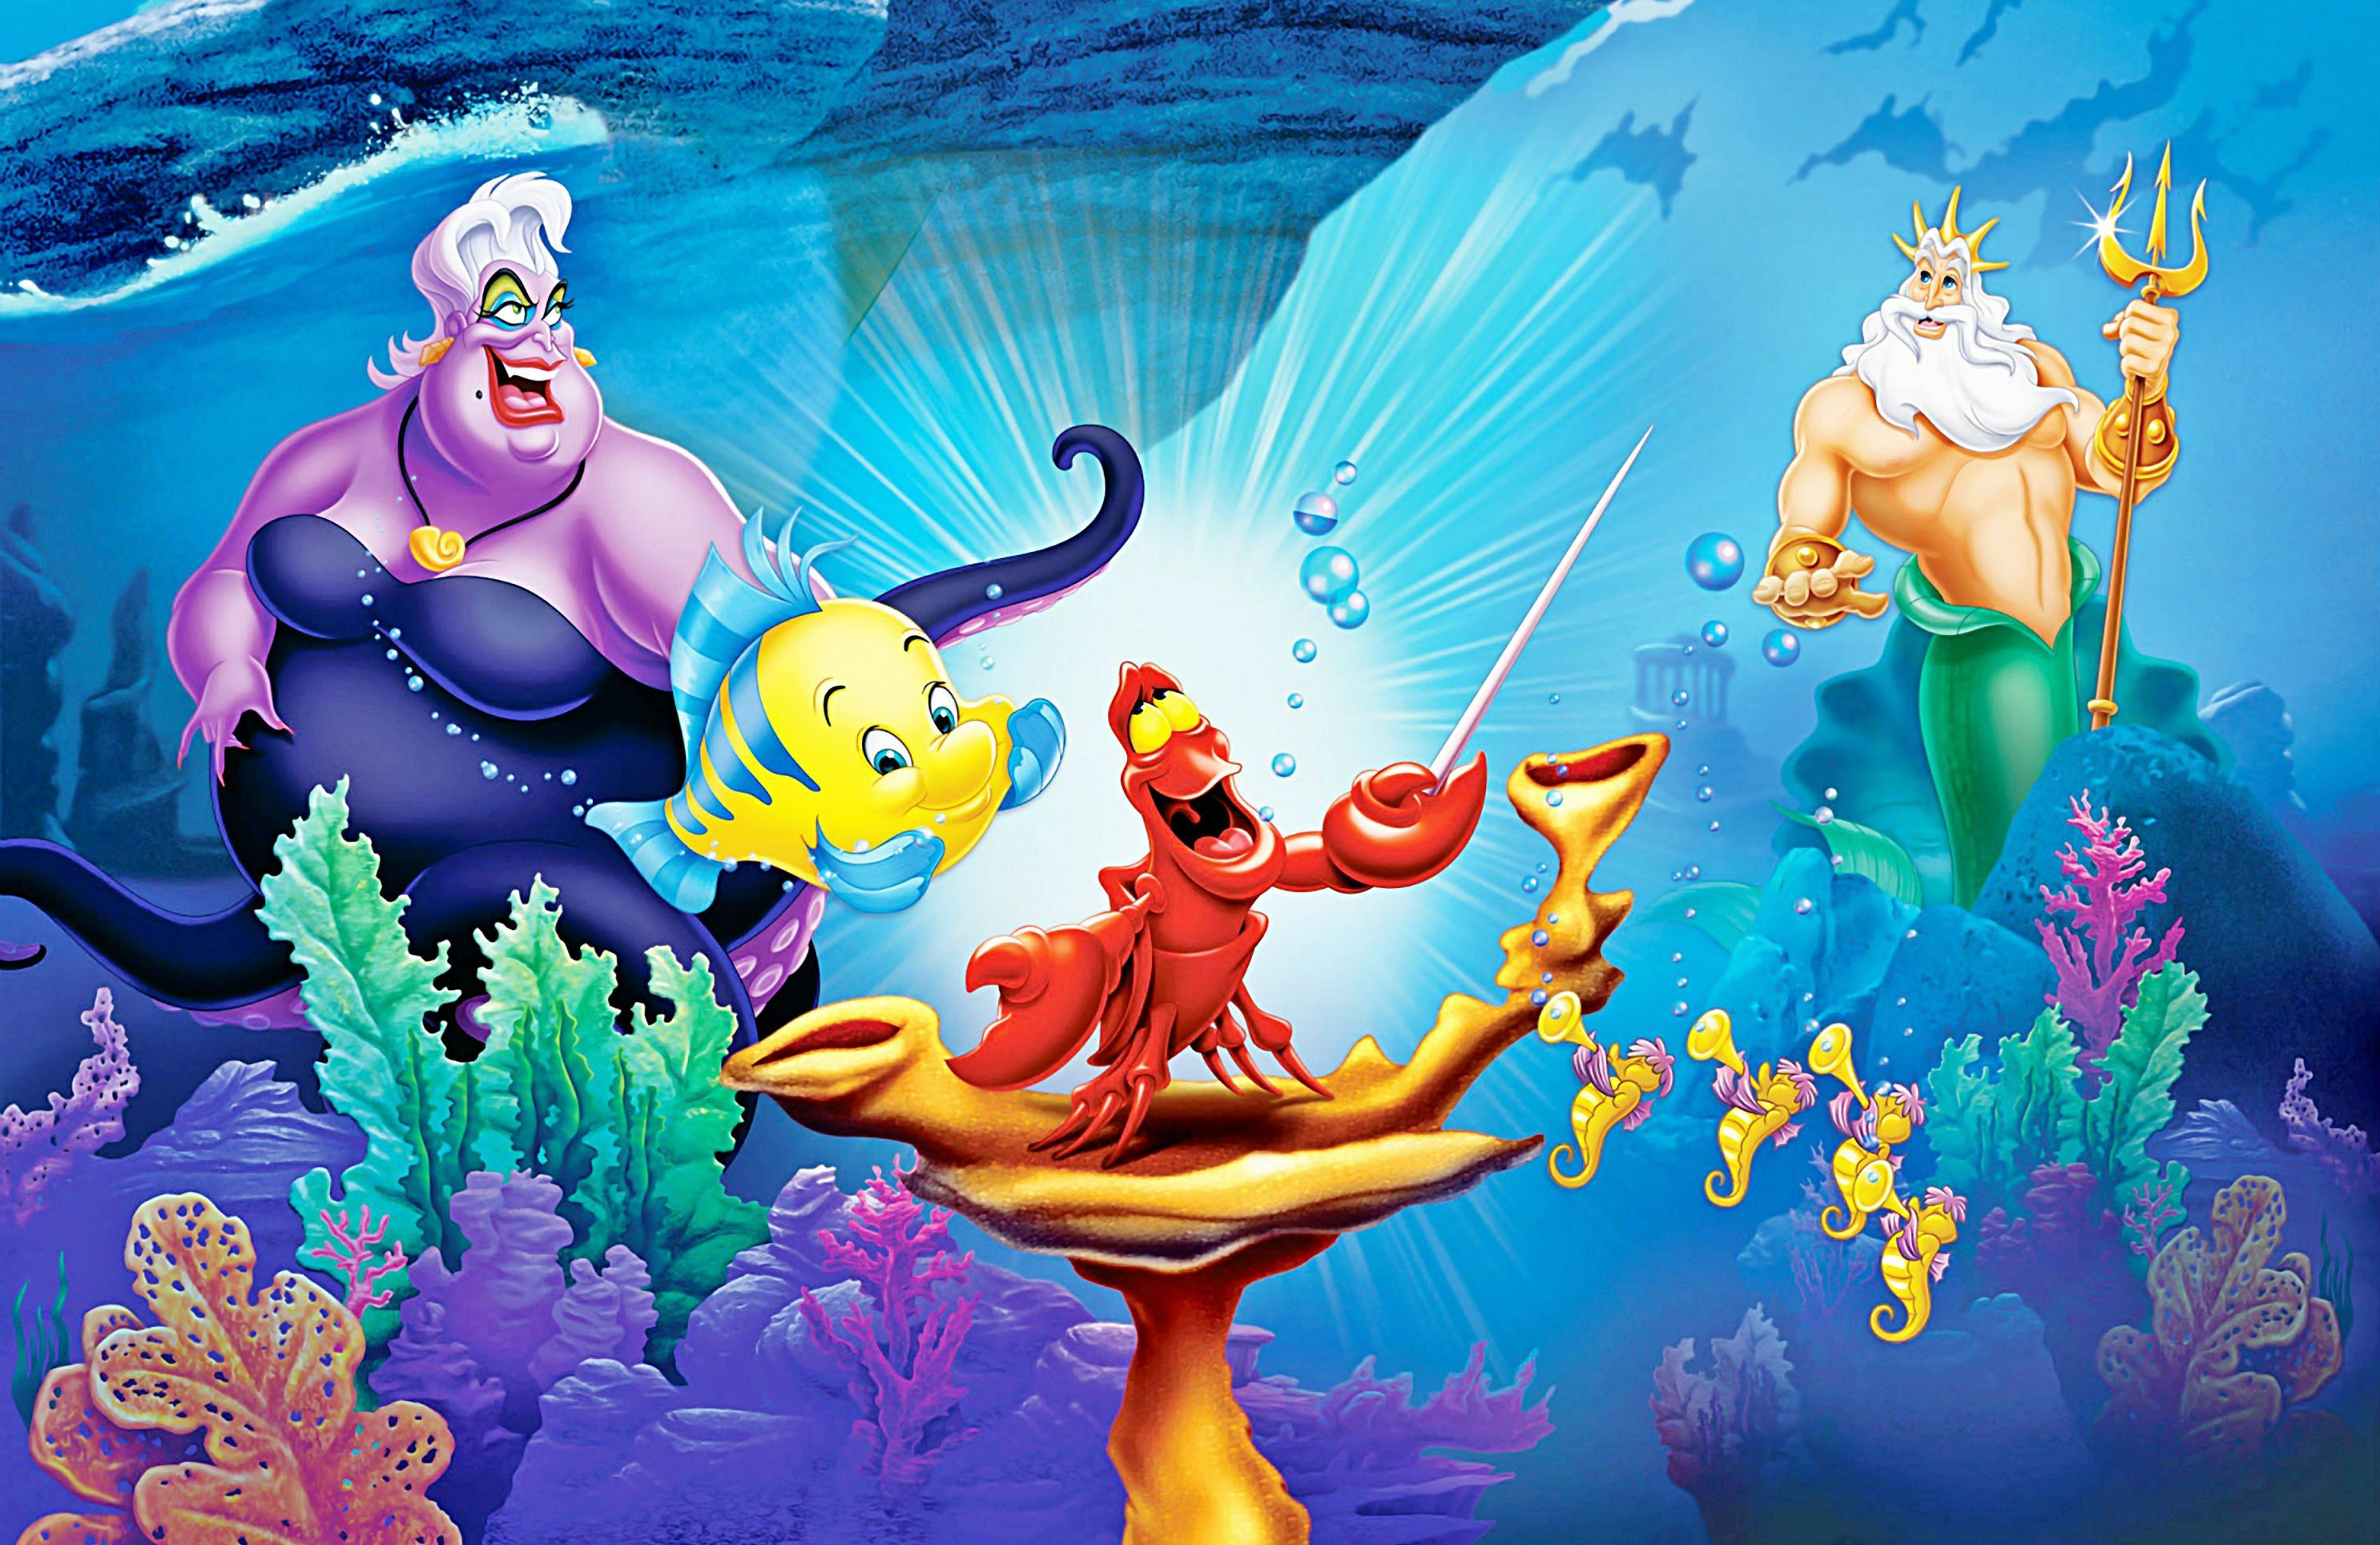 disney-princess-ariel-mermaid-wallpaper-3 (2971×1929